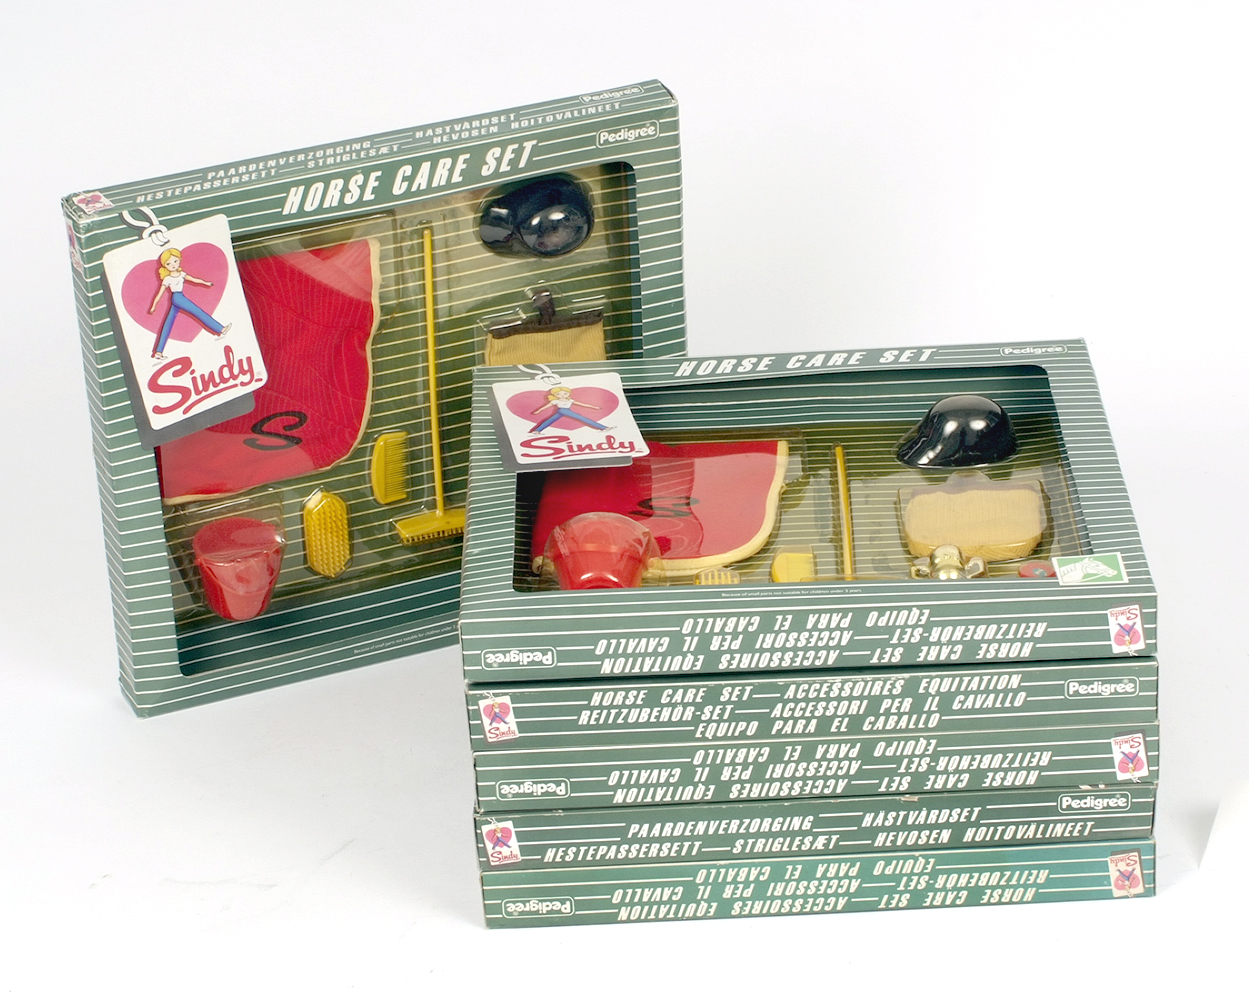 Lot 29 - A trade box containing six Pedigree Sindy Horse Care Sets. Boxed and E.